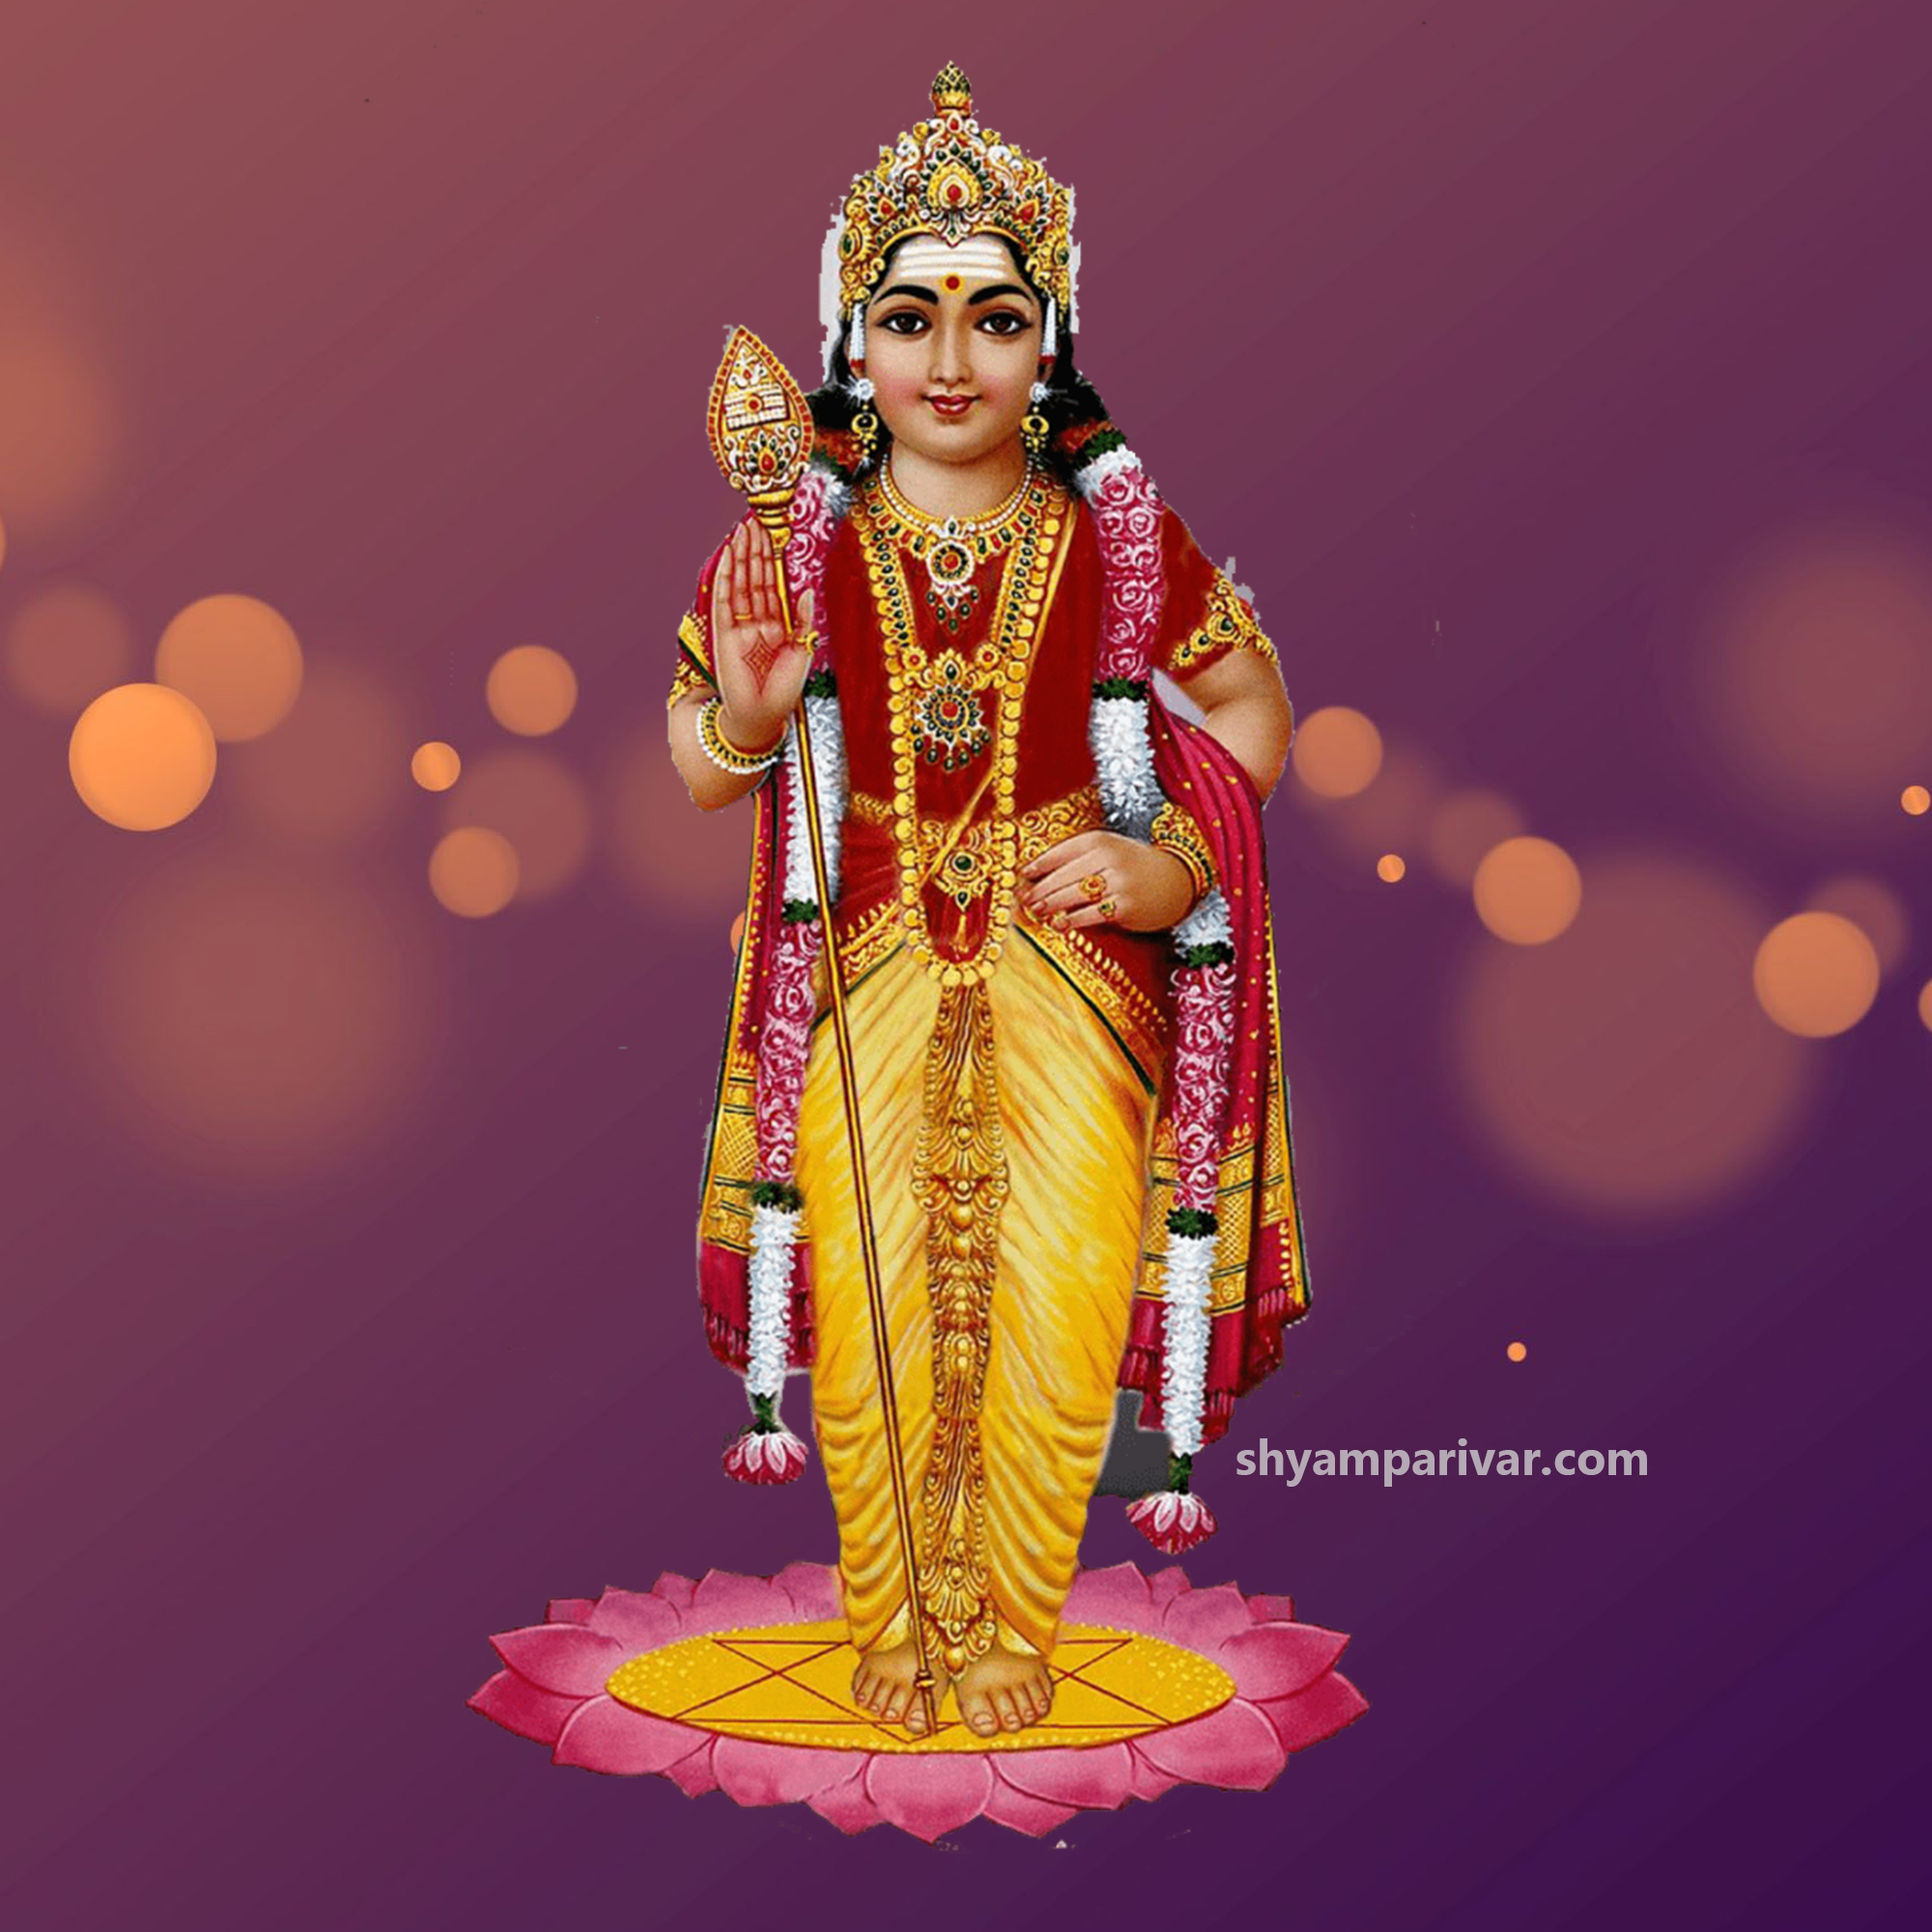 best image of lord murugan hd photos